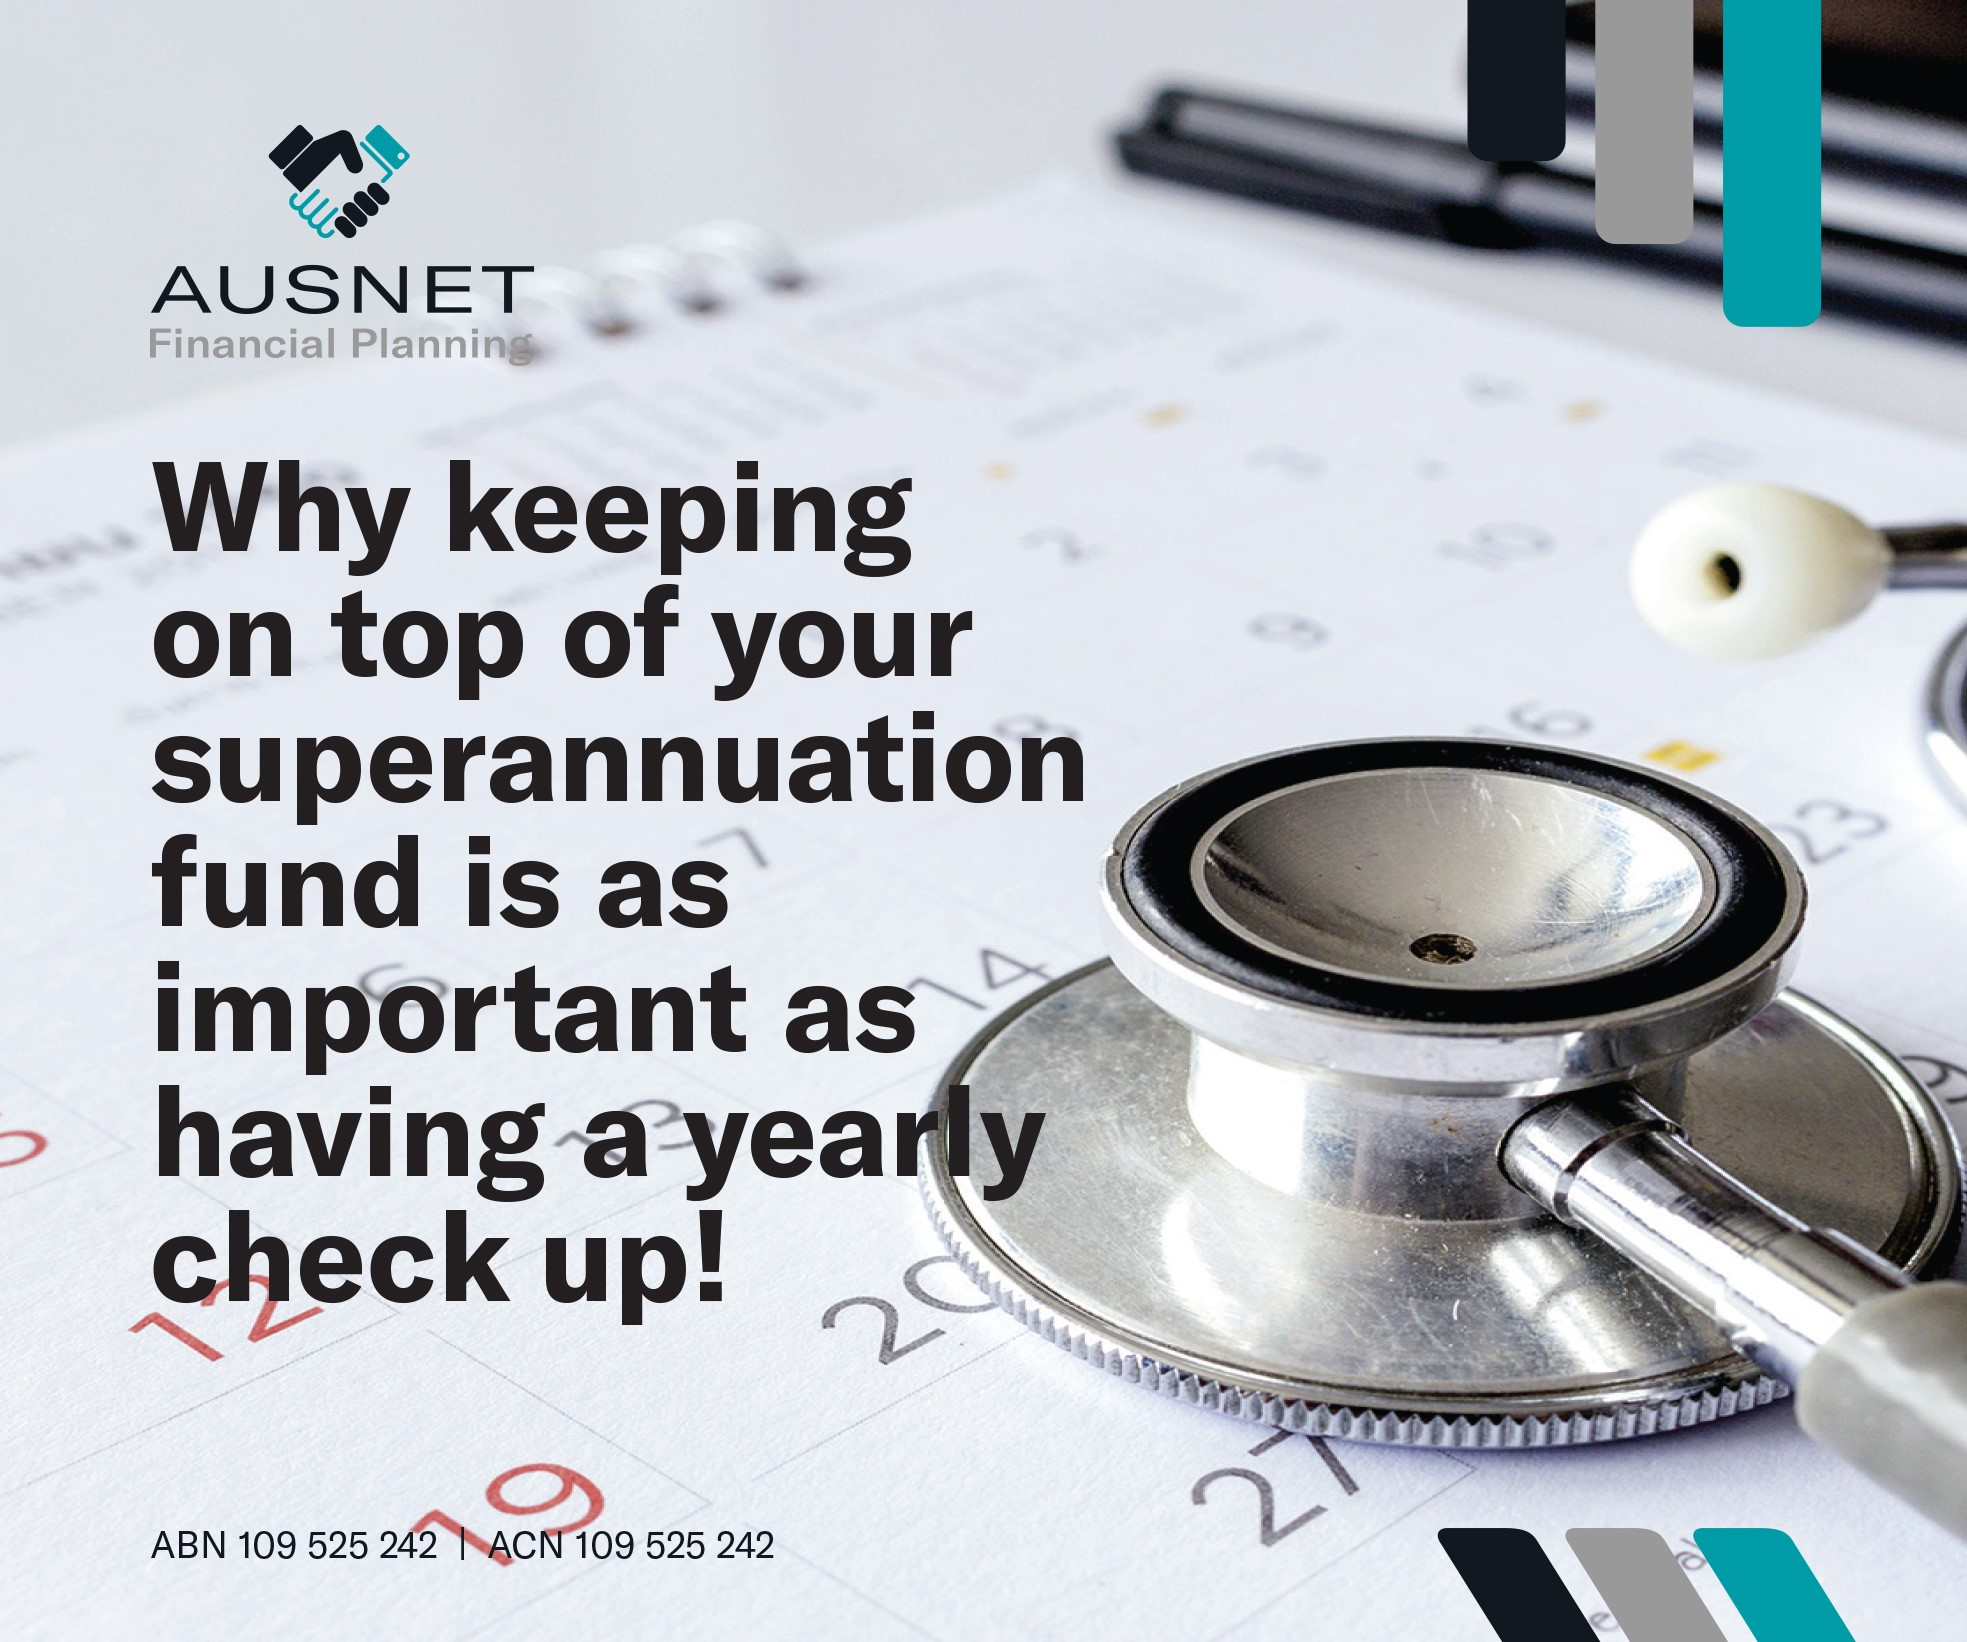 Why keeping on top of your superannuation fund is as important as having a yearly check up!